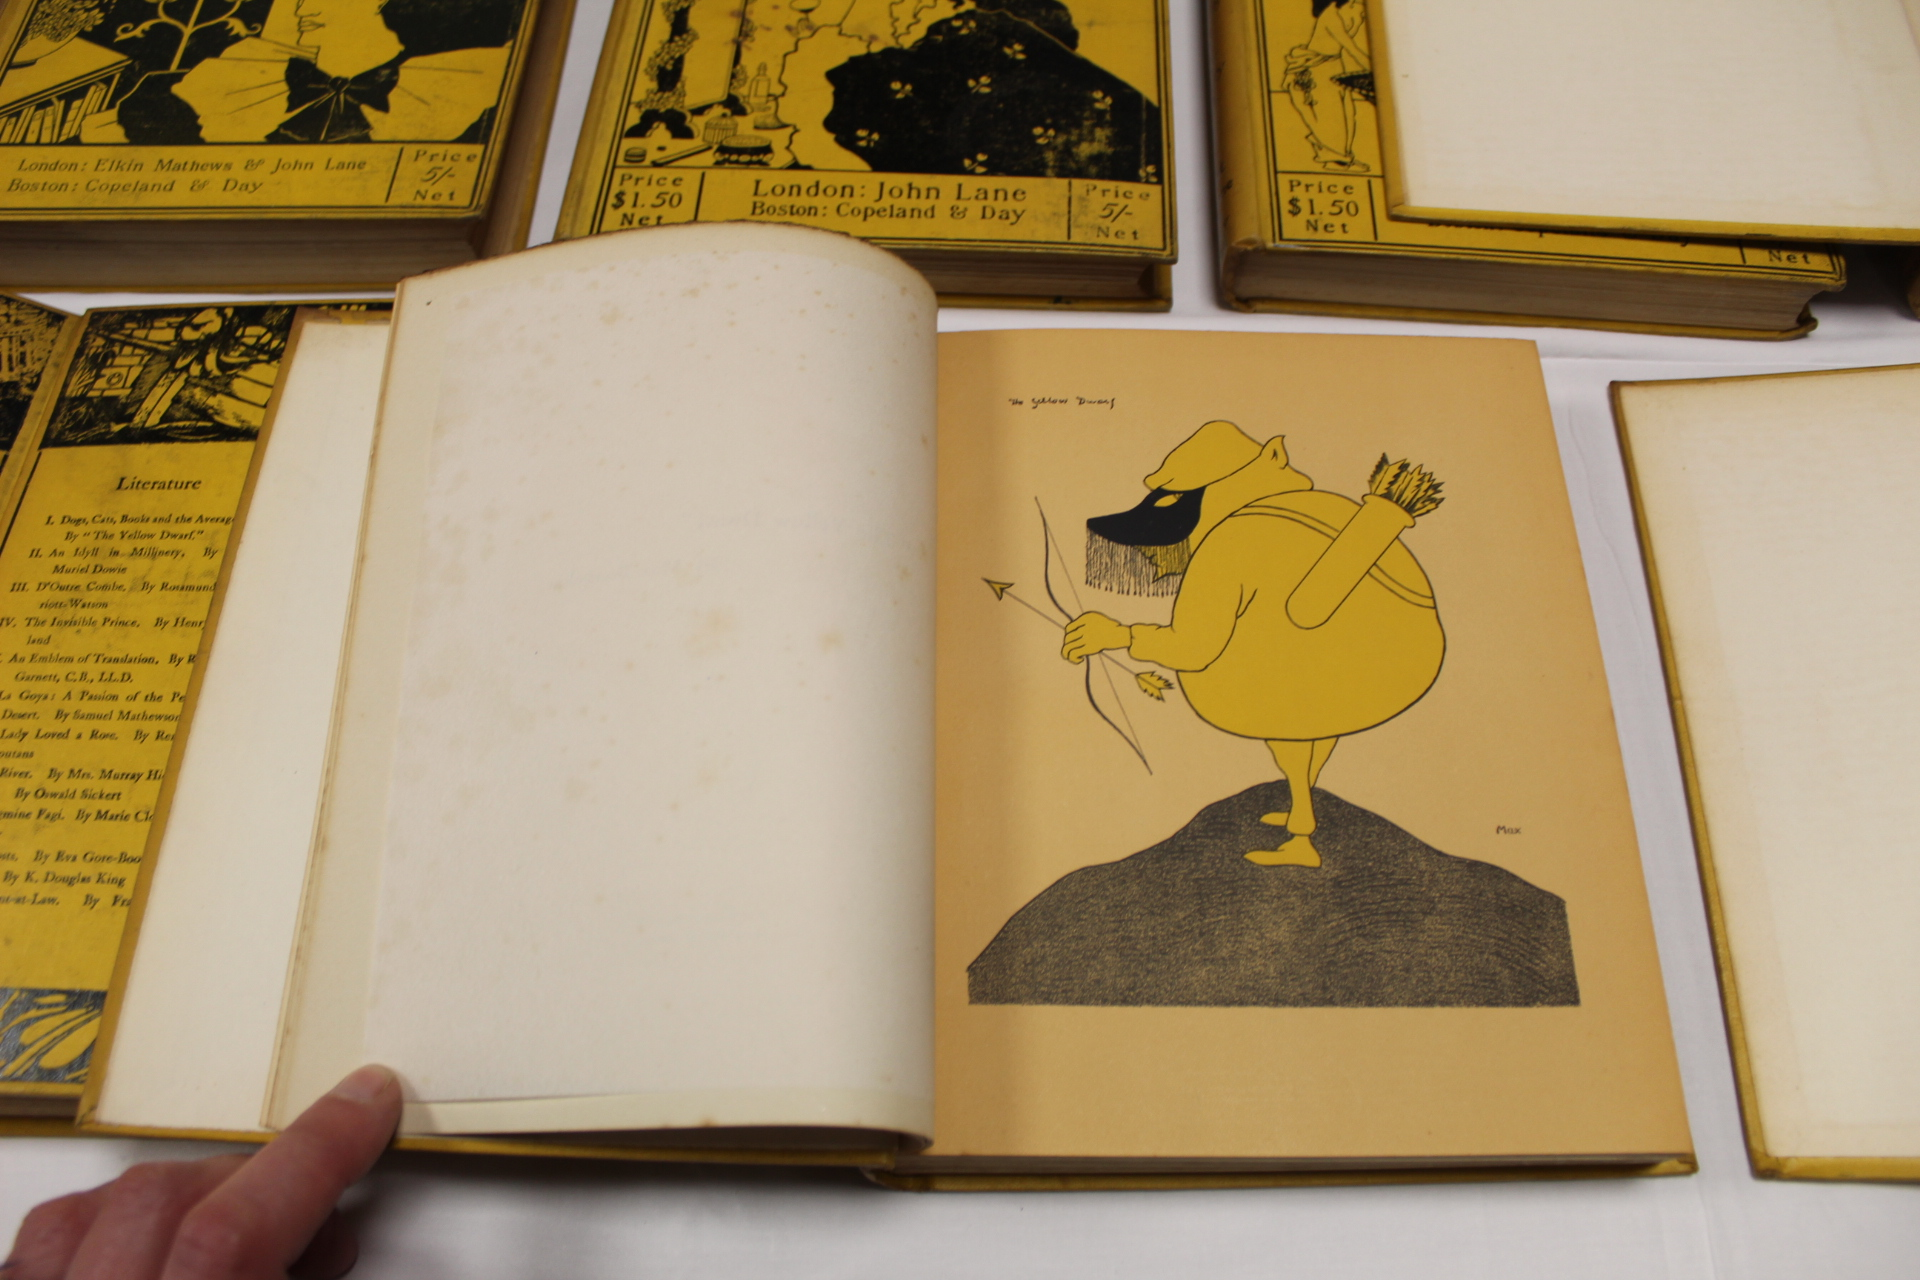 THE YELLOW BOOK.An Illustrated Quarterly. A set of 13 vols., many fine illus. Small quarto. - Image 17 of 45